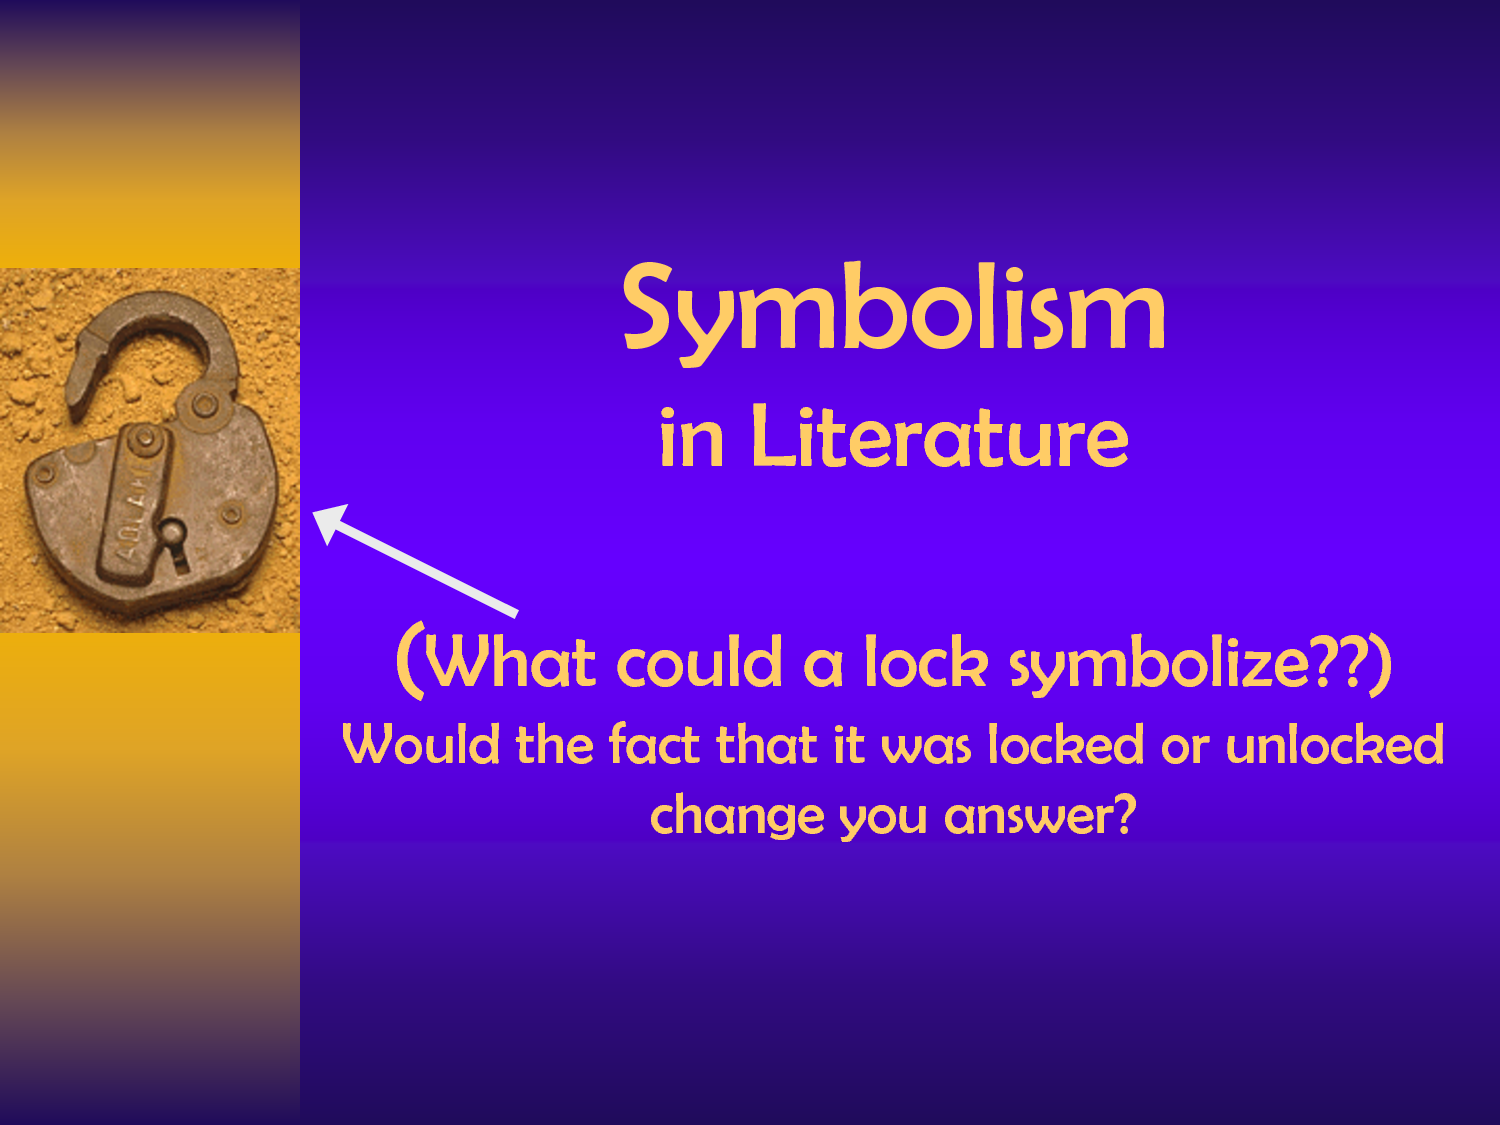 literary symbols Symbol is a setting, object, character, or event in a story that carries more than the literal meaning and therefore represents something significant to understanding the meaning of a work.